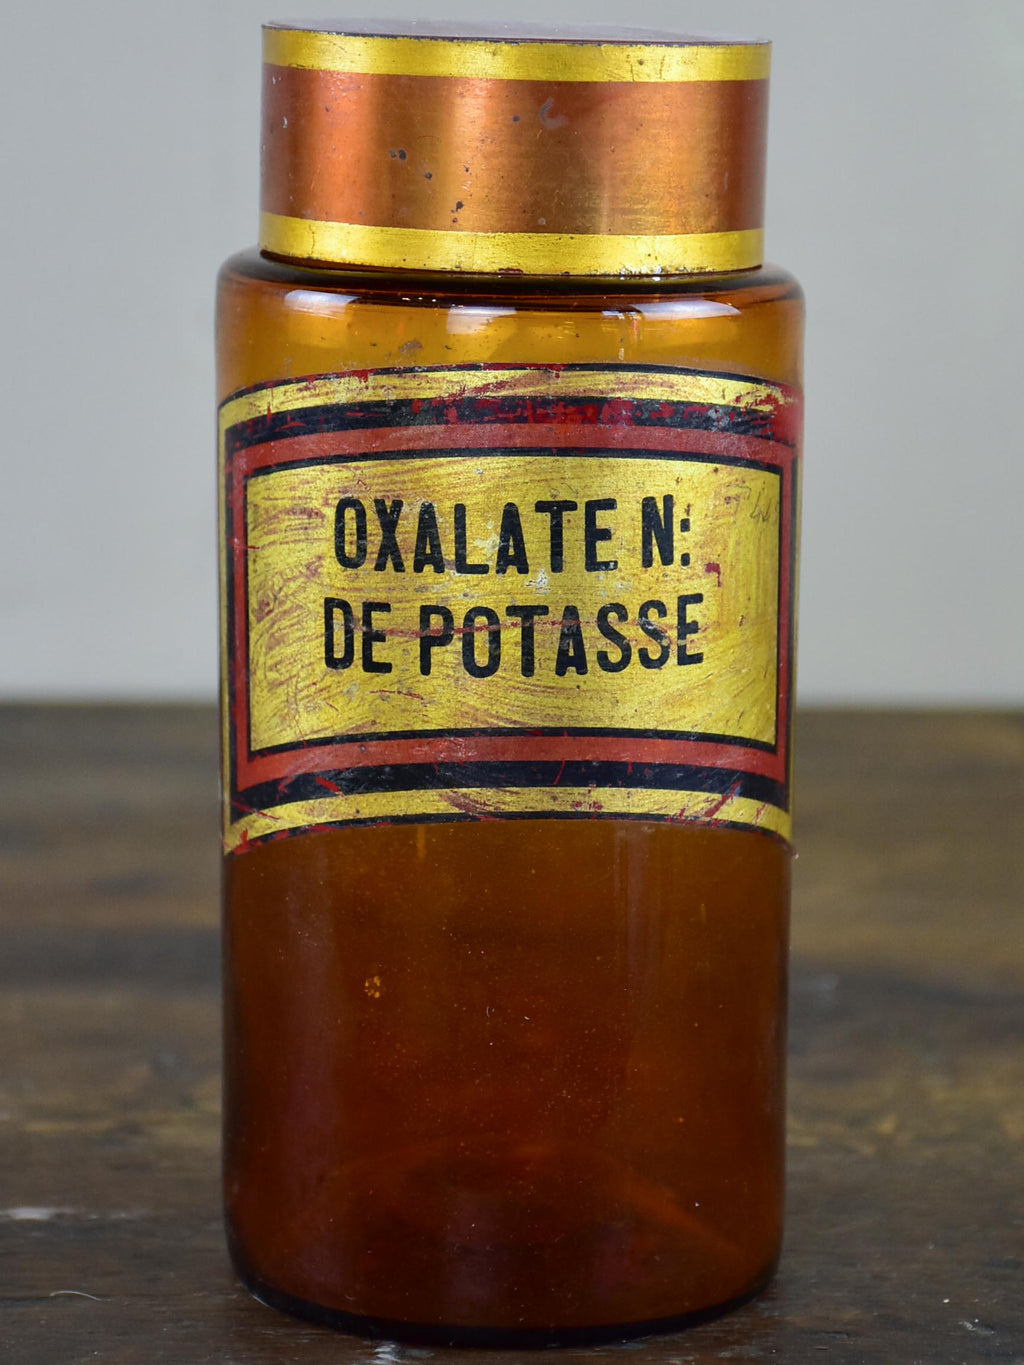 19th Century apothecary jar - Oxalate N: de Potasse